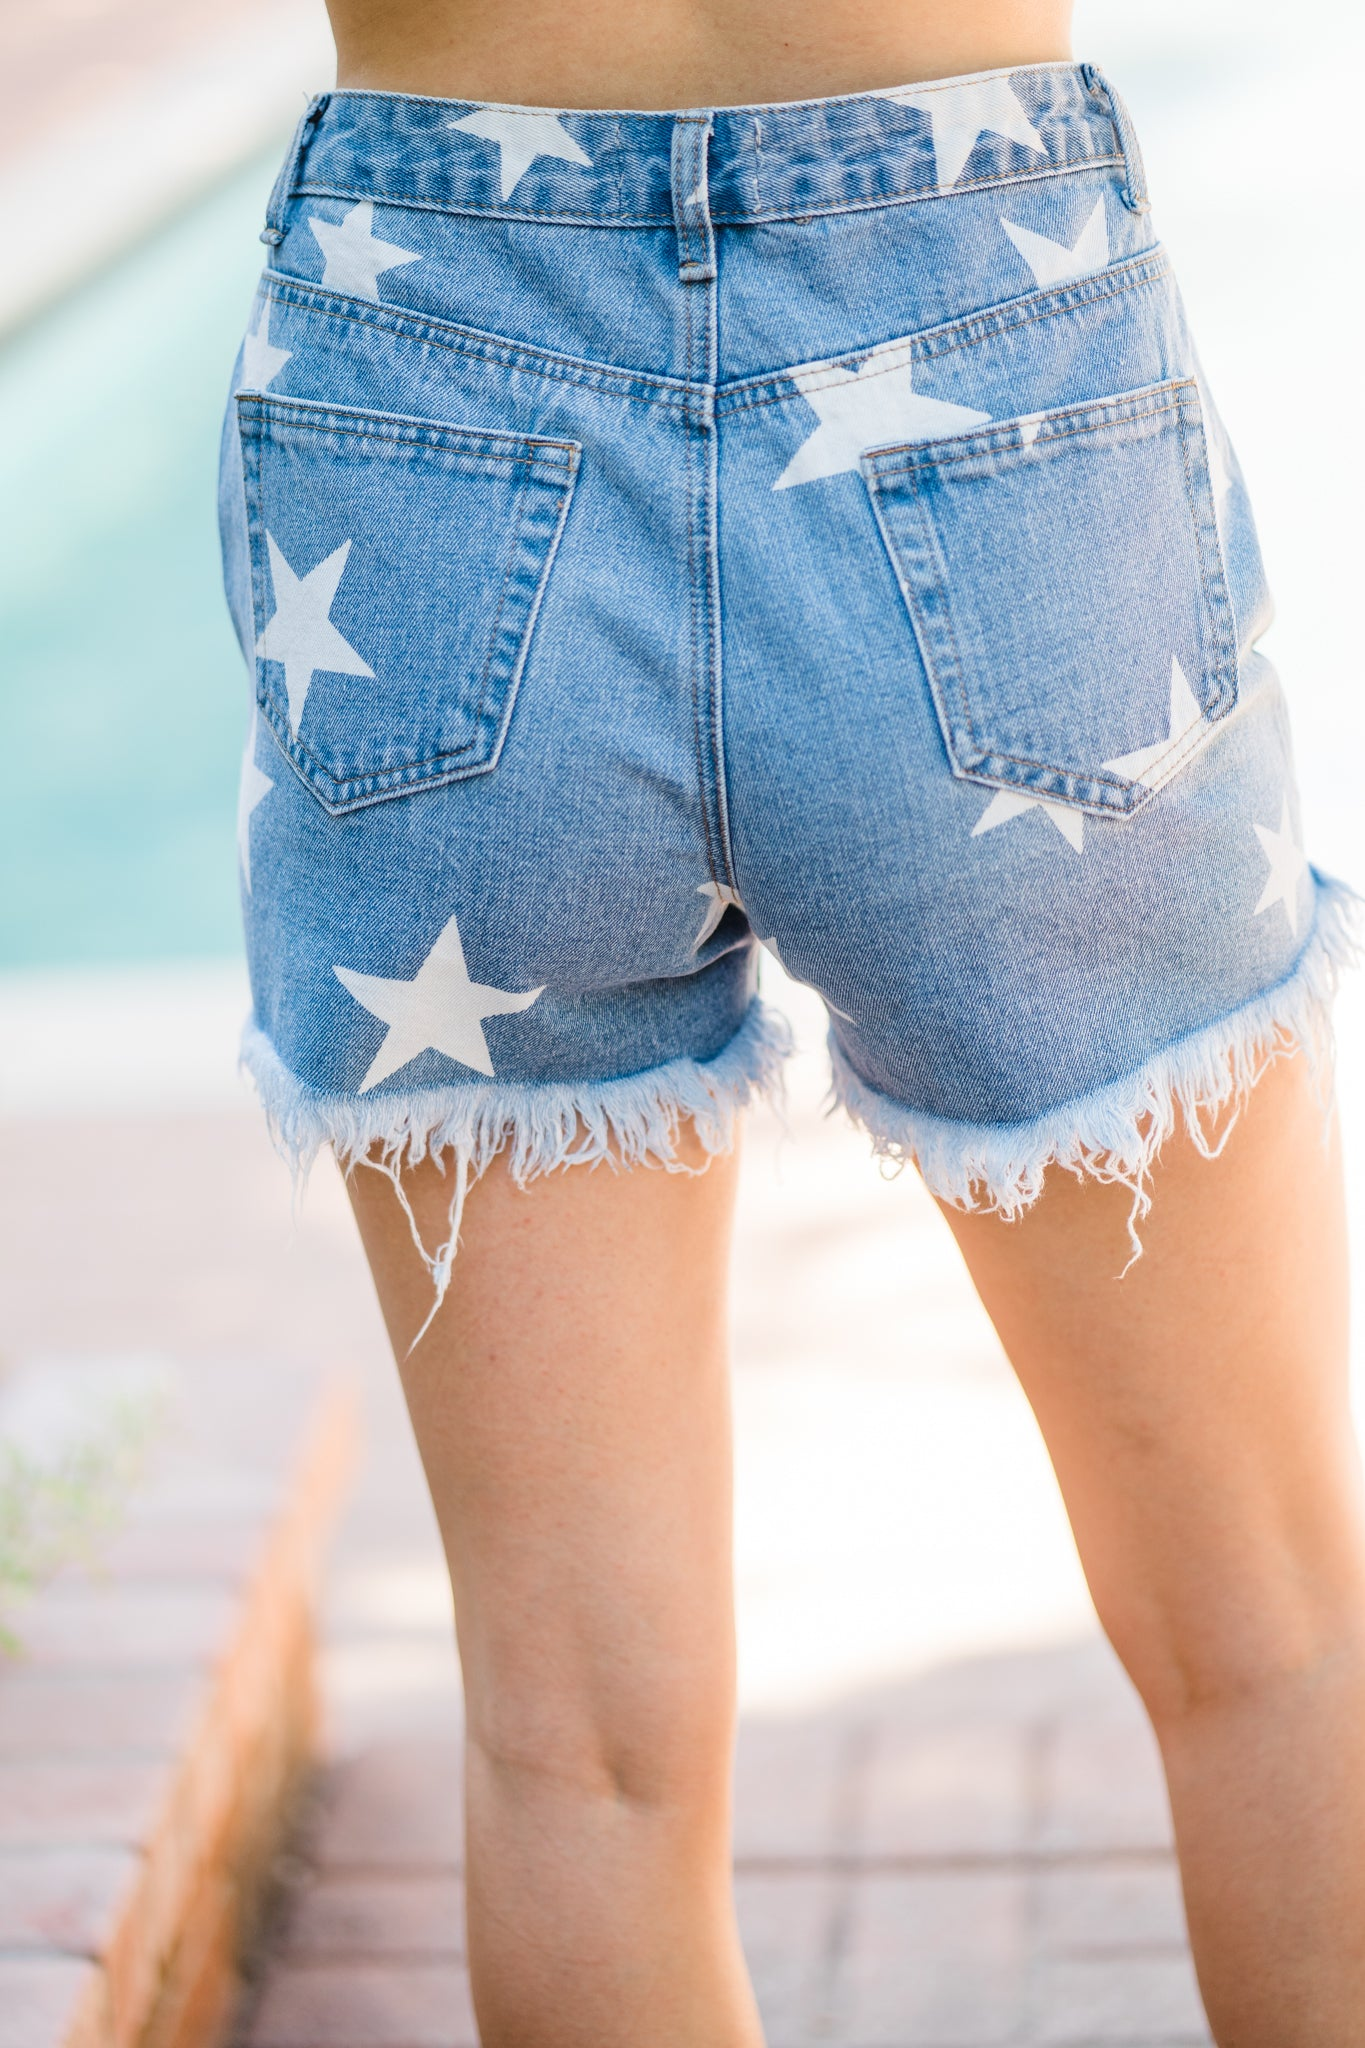 Star Spangled Cuttoffs - Pistols and Petticoats